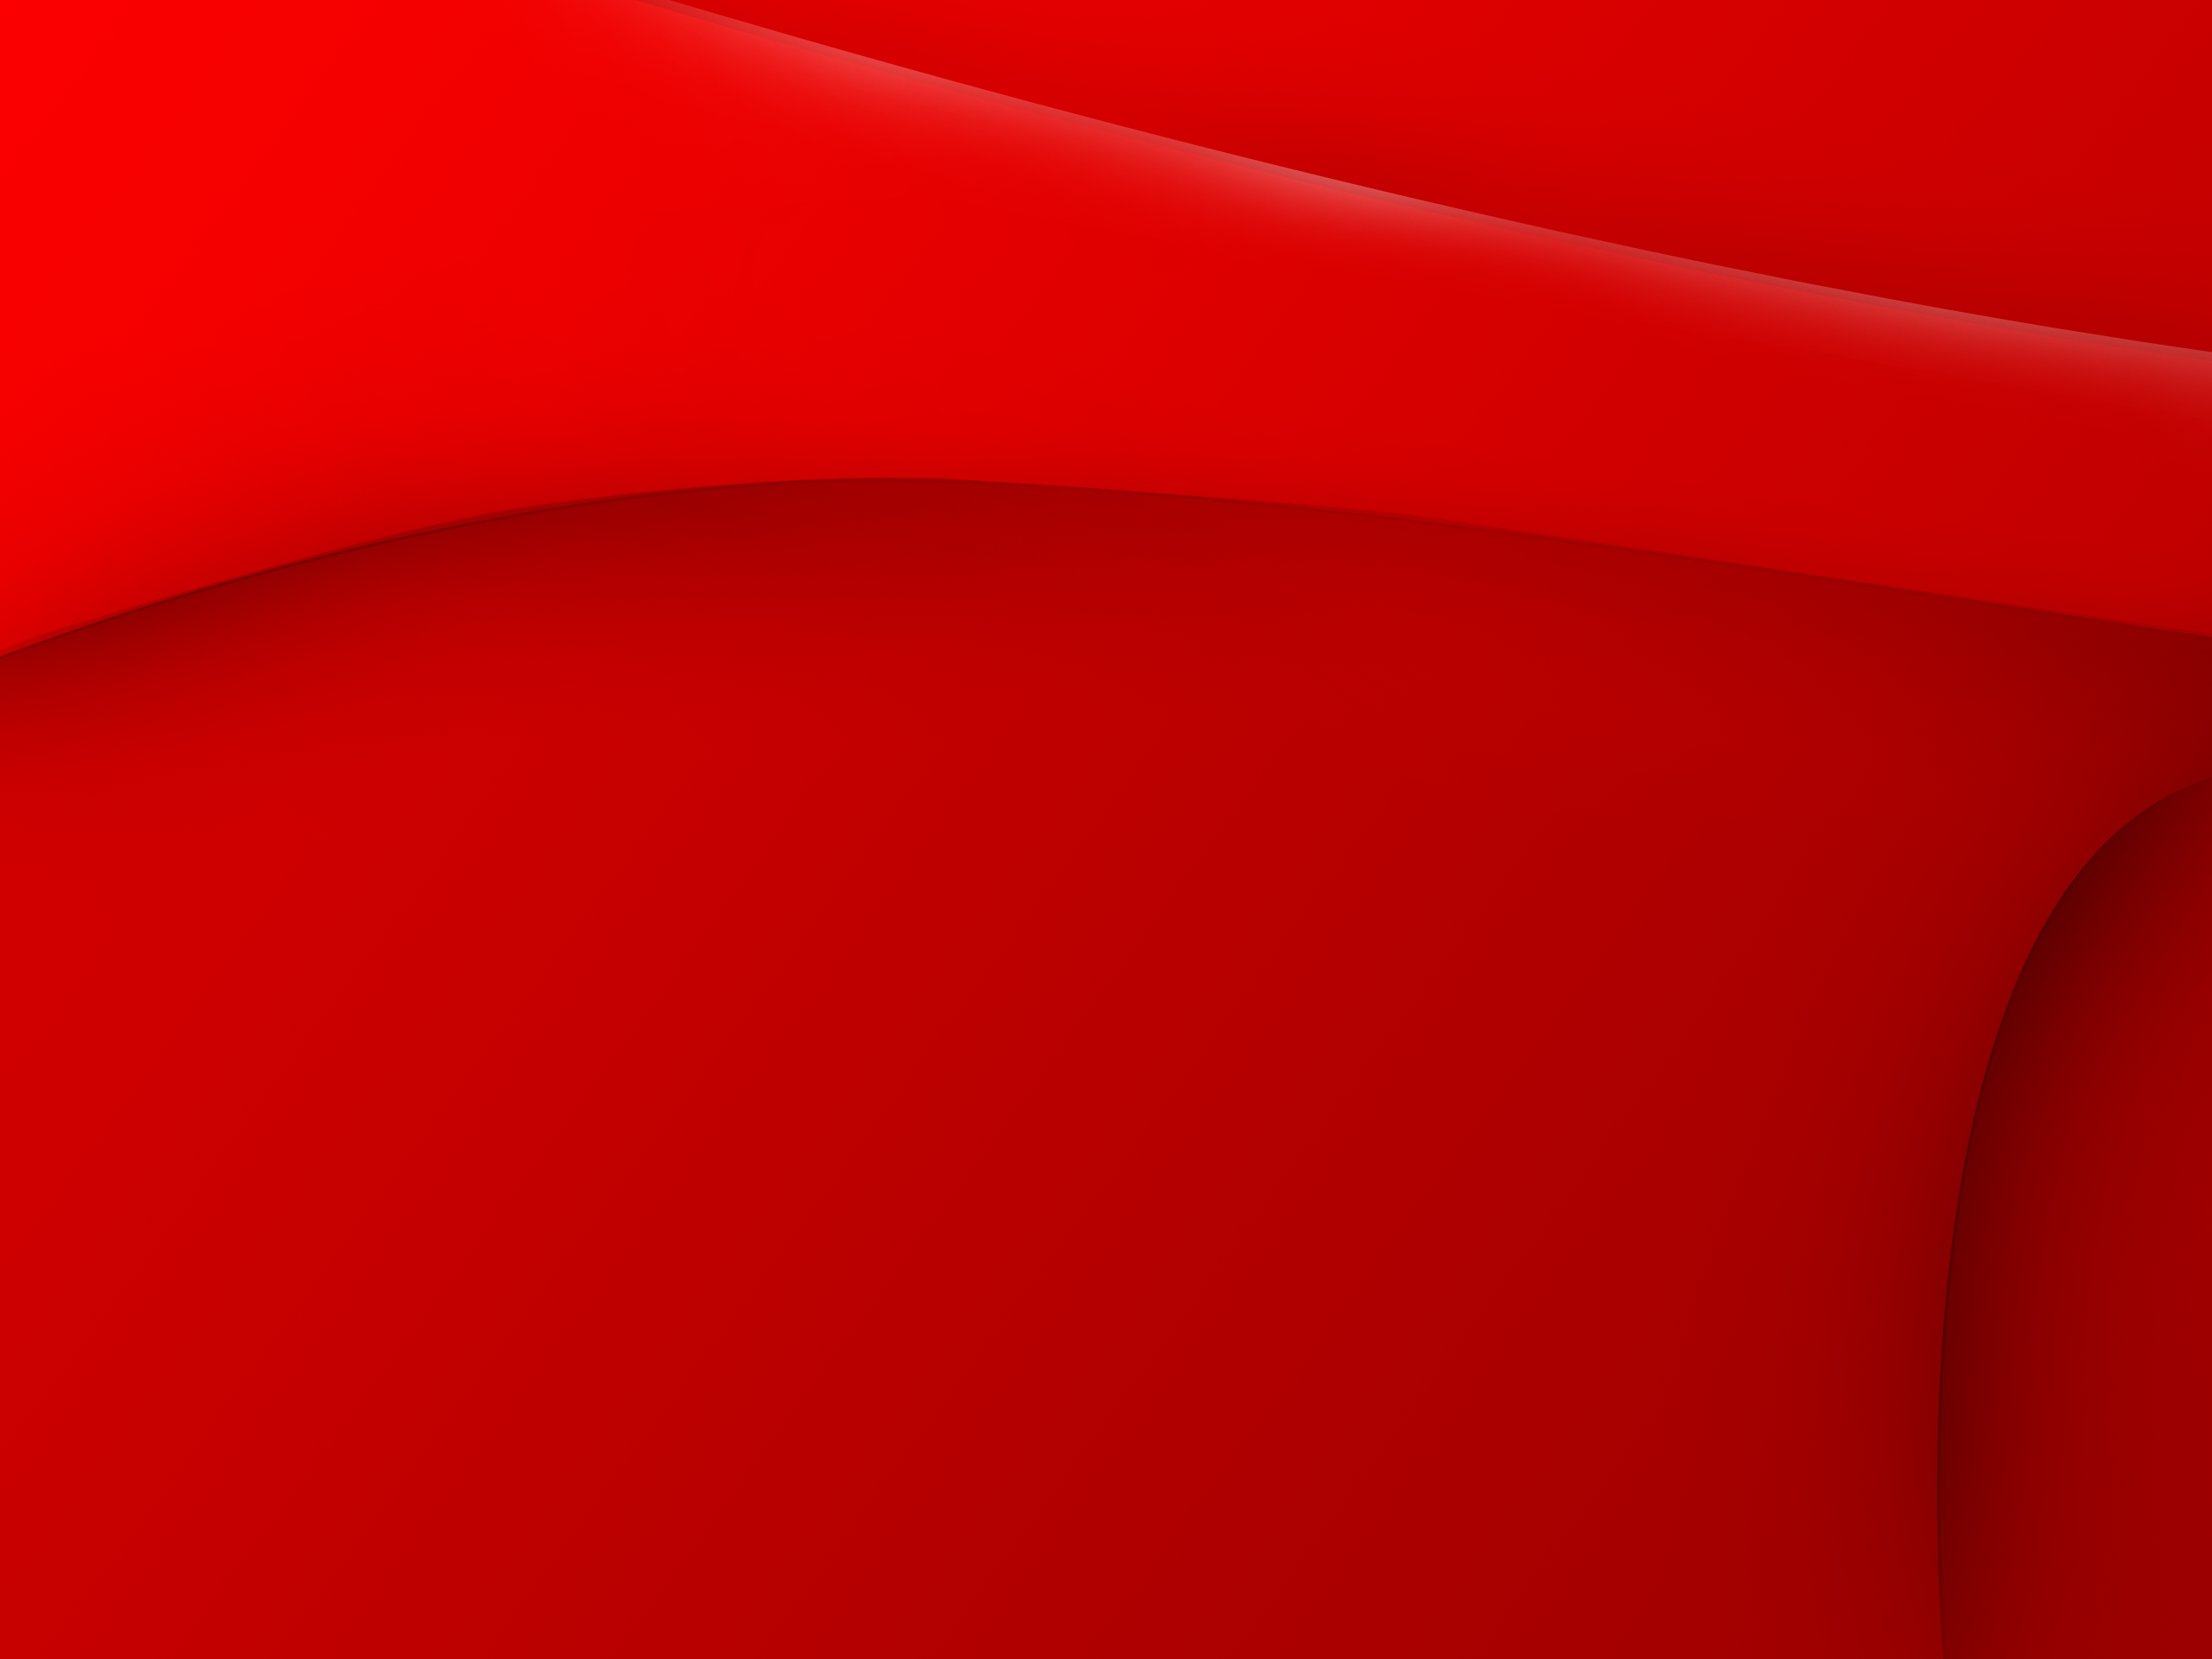 wallpaper abstract red by too fast customization wallpaper abstract ...